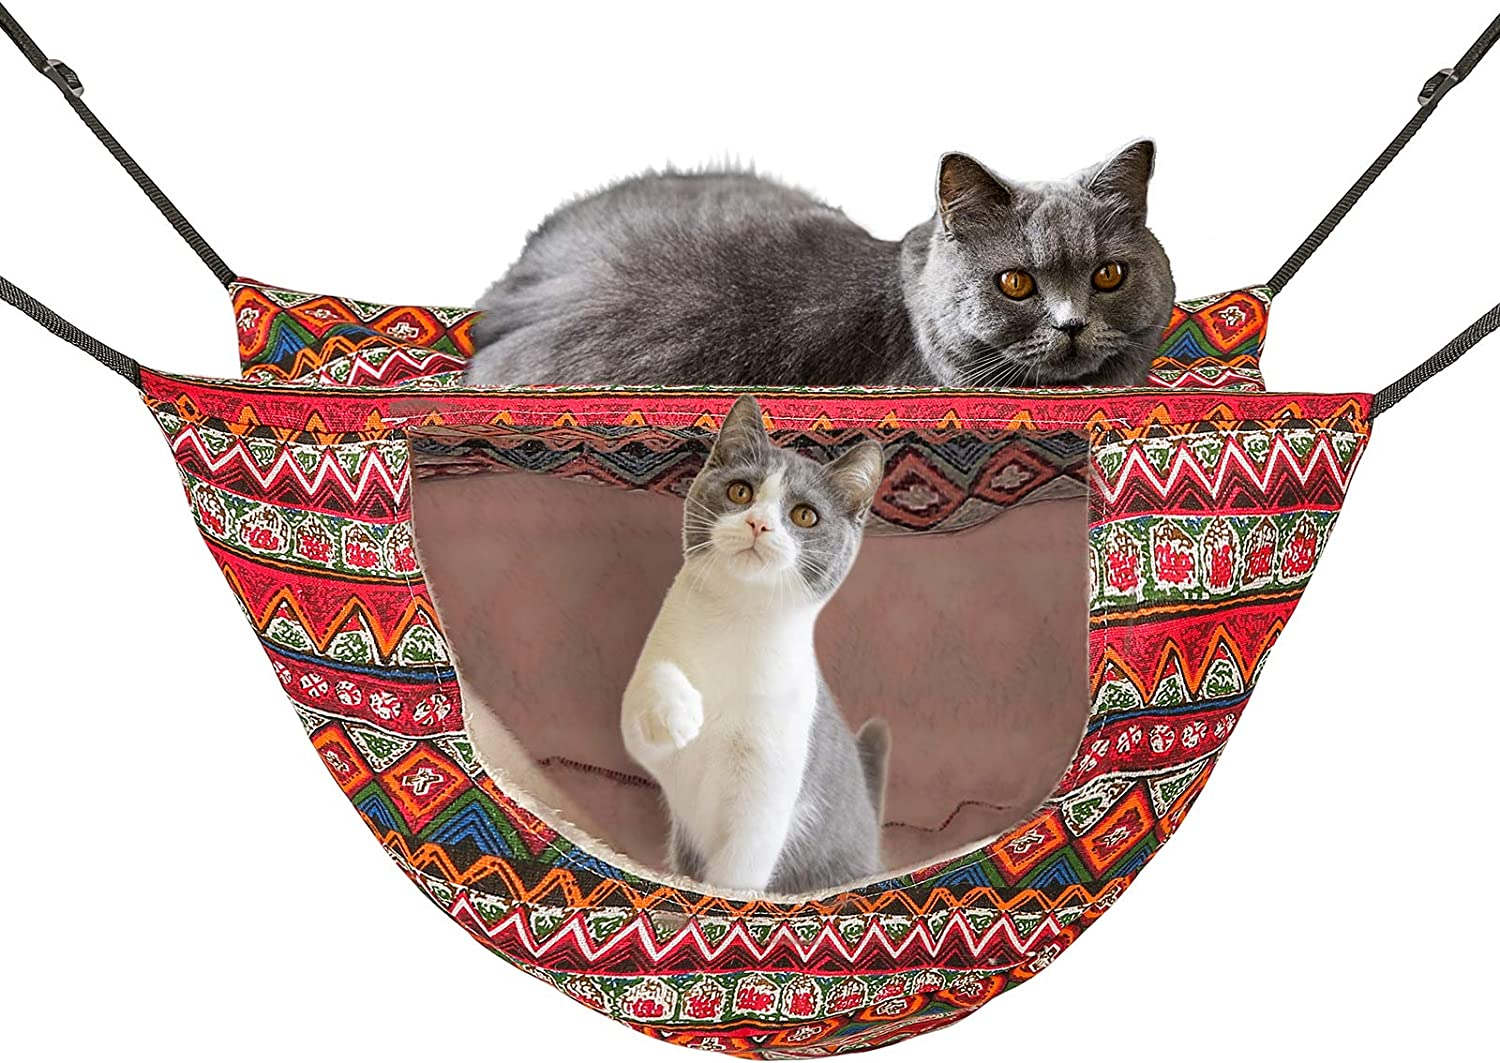 ONENIN Cat Cage Hammock Hanging New Free Shipping included Shipping Soft P Bed for Kitten Ferret Pet